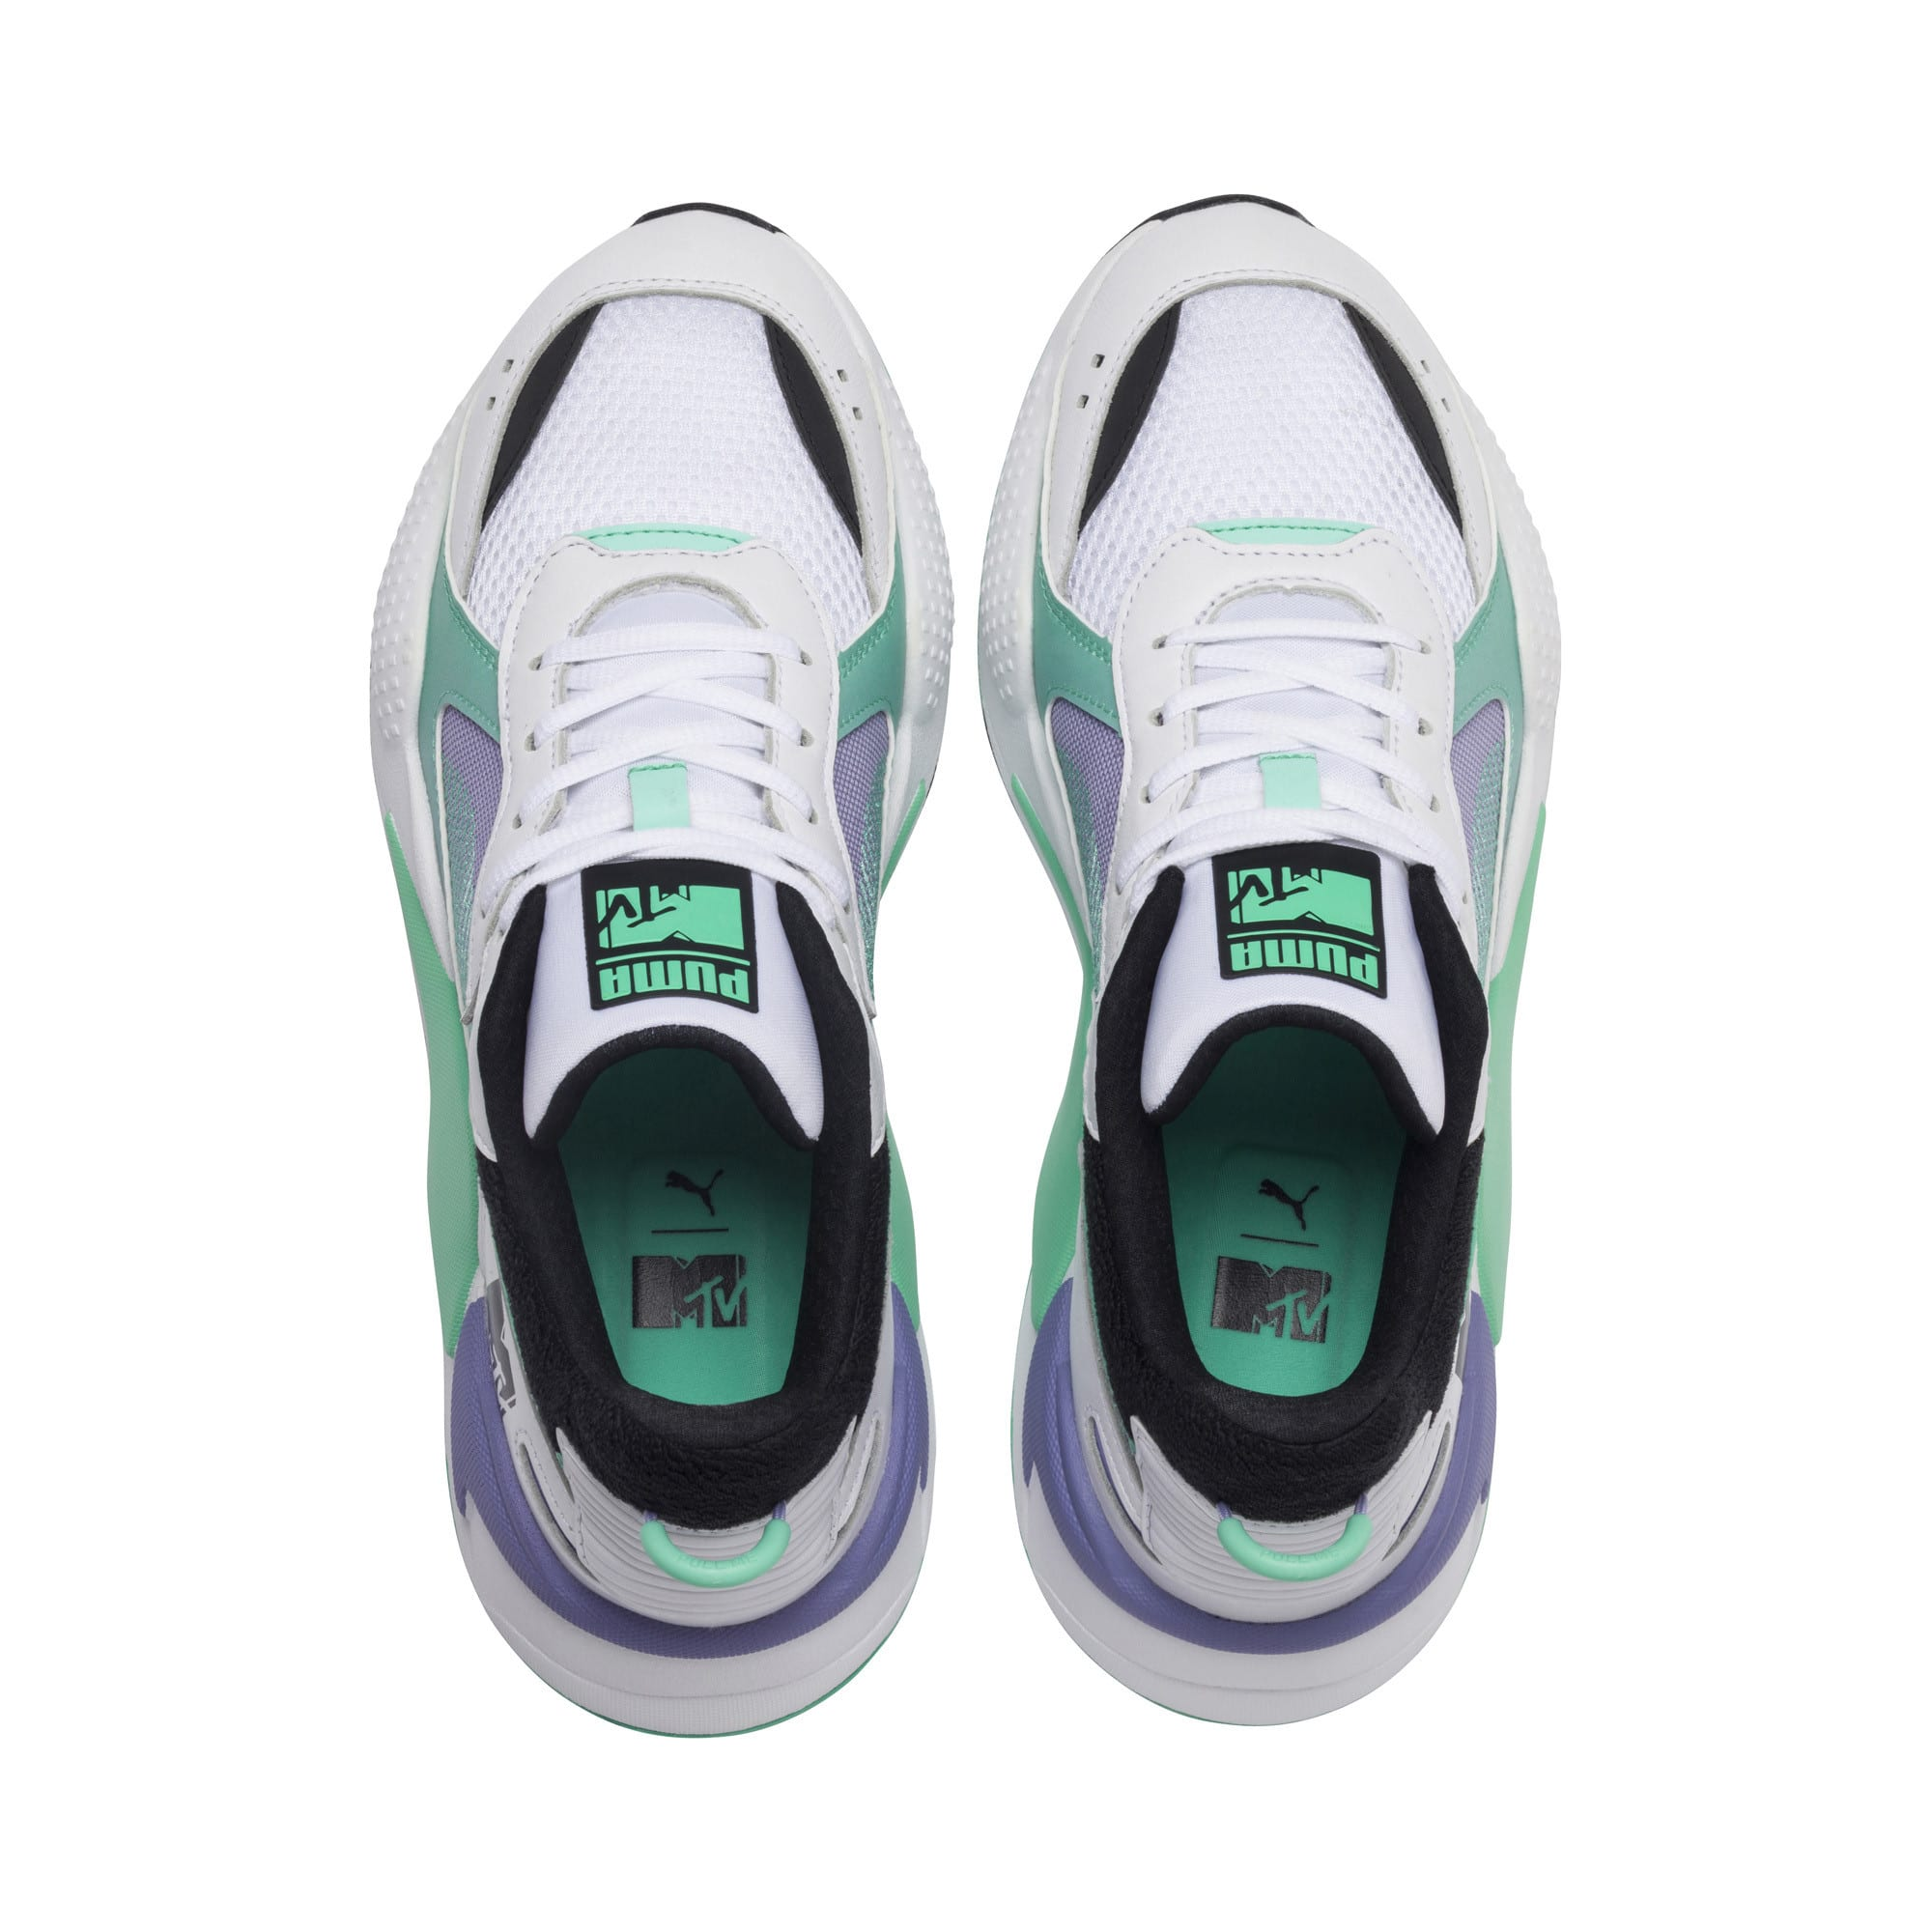 MTV x Puma RS-X 'Puma White/Sweet Lavender' 370407-01 (Top)